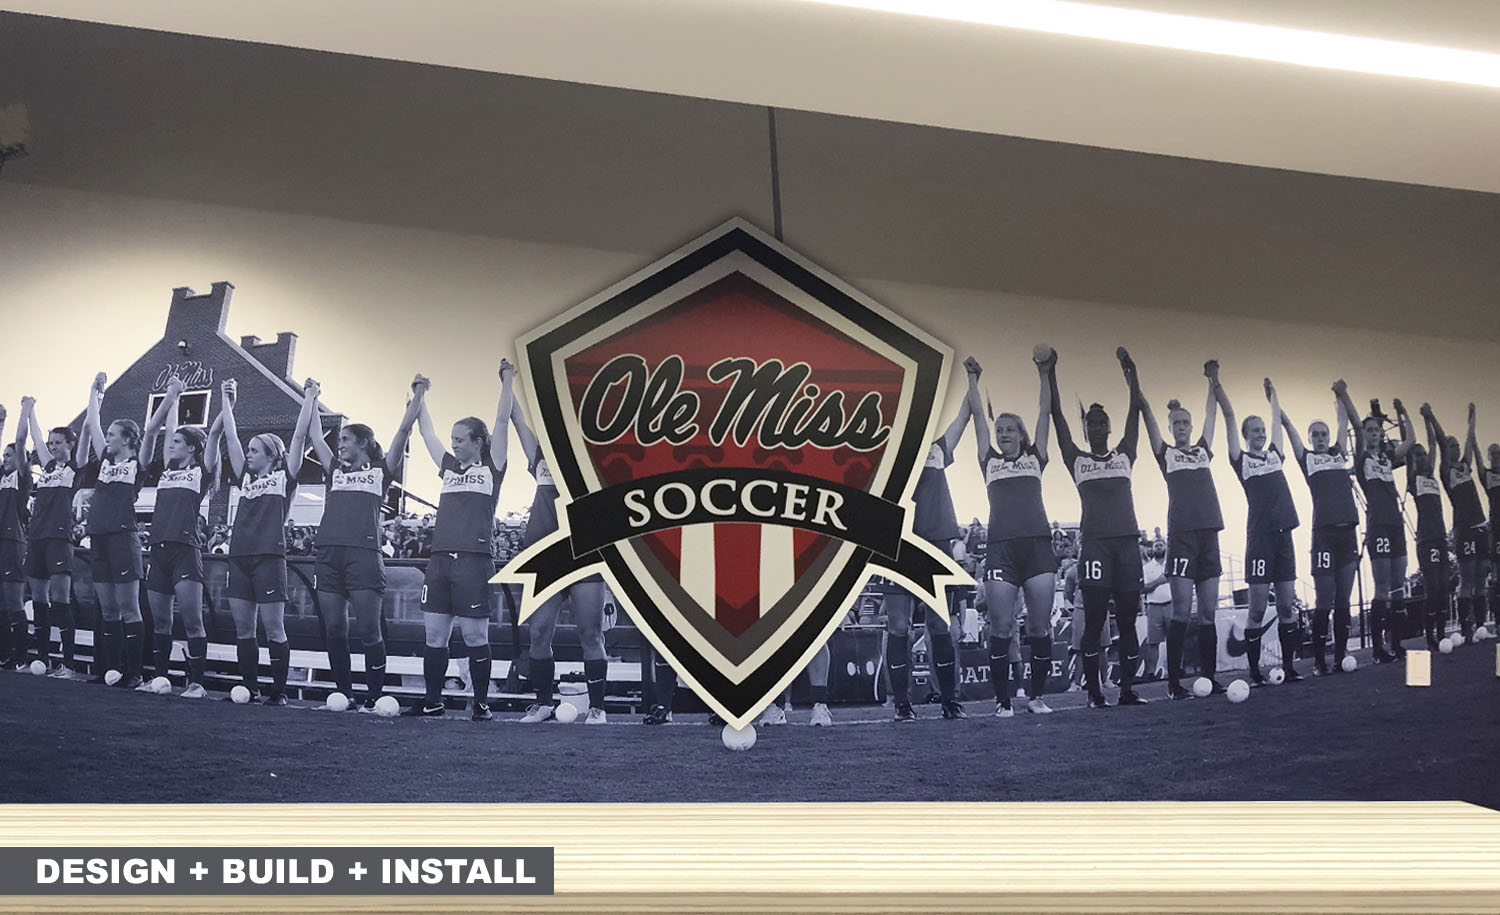 University of Mississippi – Soccer